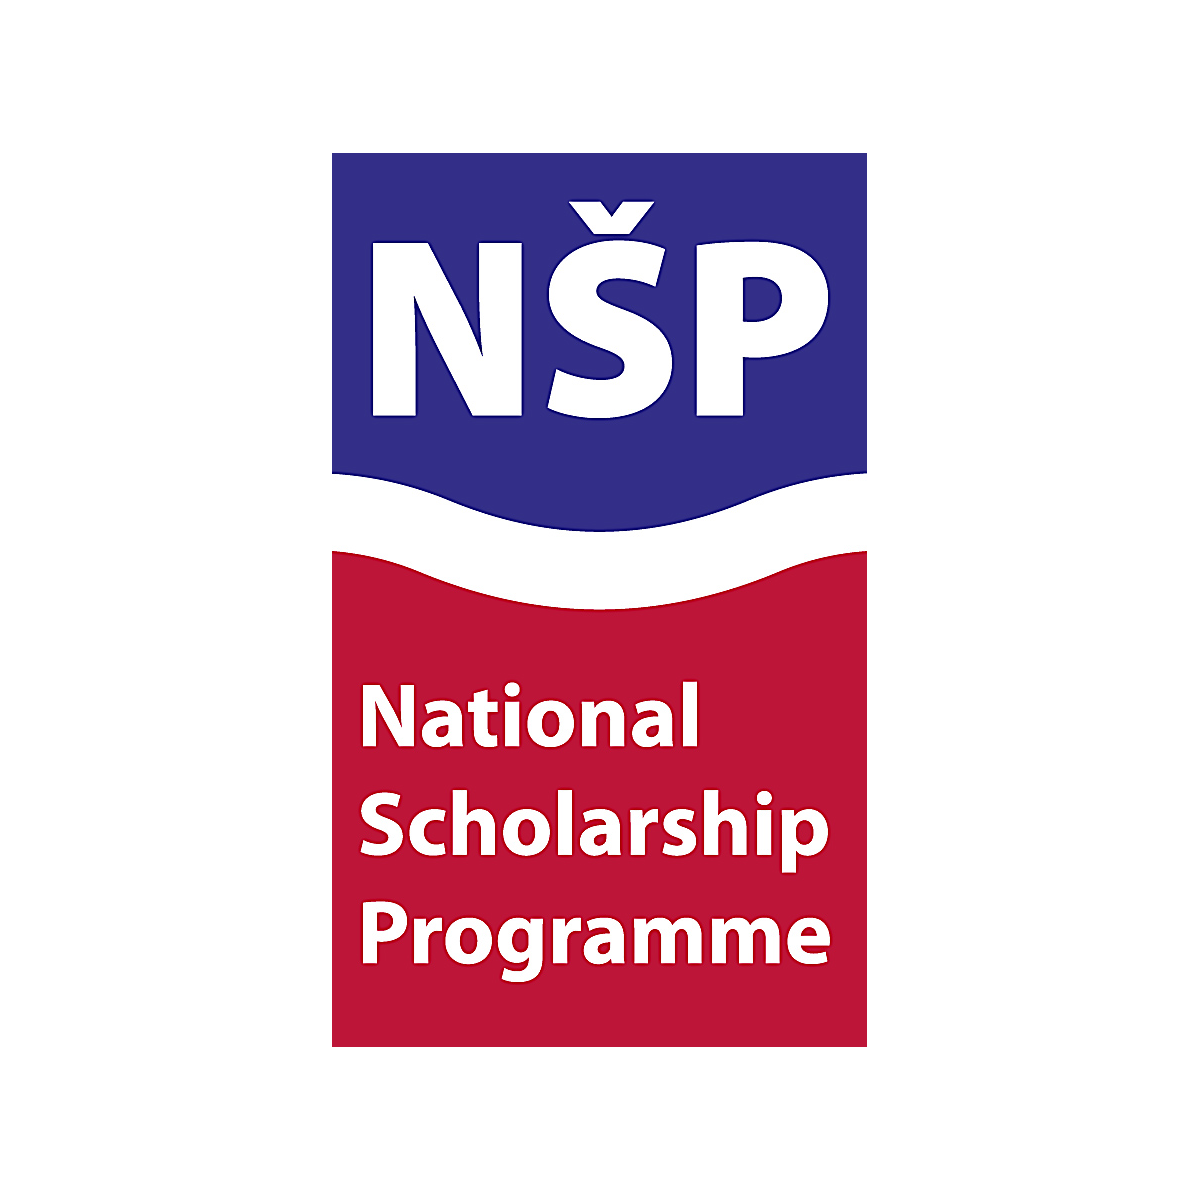 National Scholarship Programme (NSP)